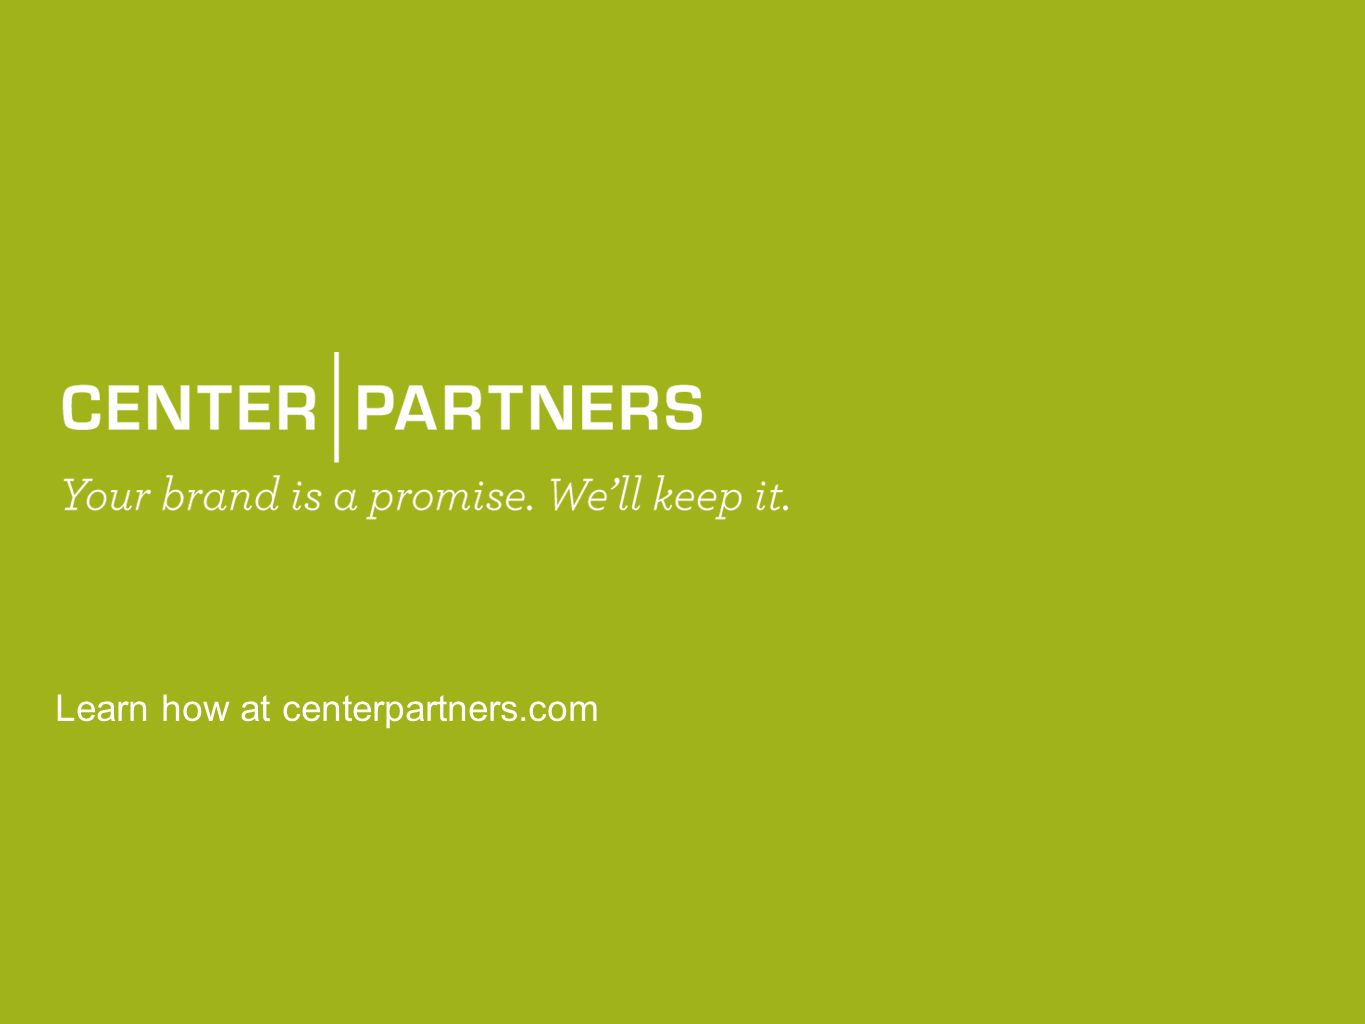 Learn how at centerpartners.com